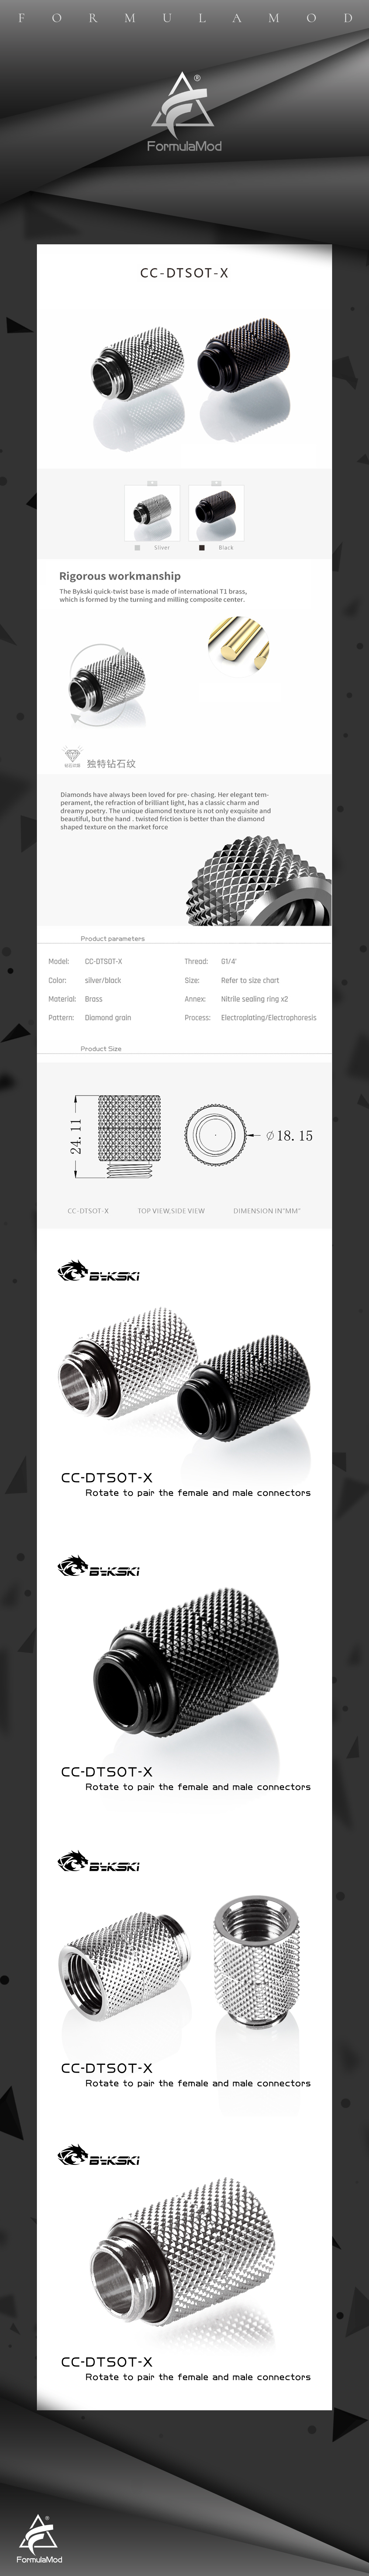 Bykski Male To Female Extender Rotary Fittings, Multiple Color G1/4 Male To Female Fittings, CC-DTSOT-X